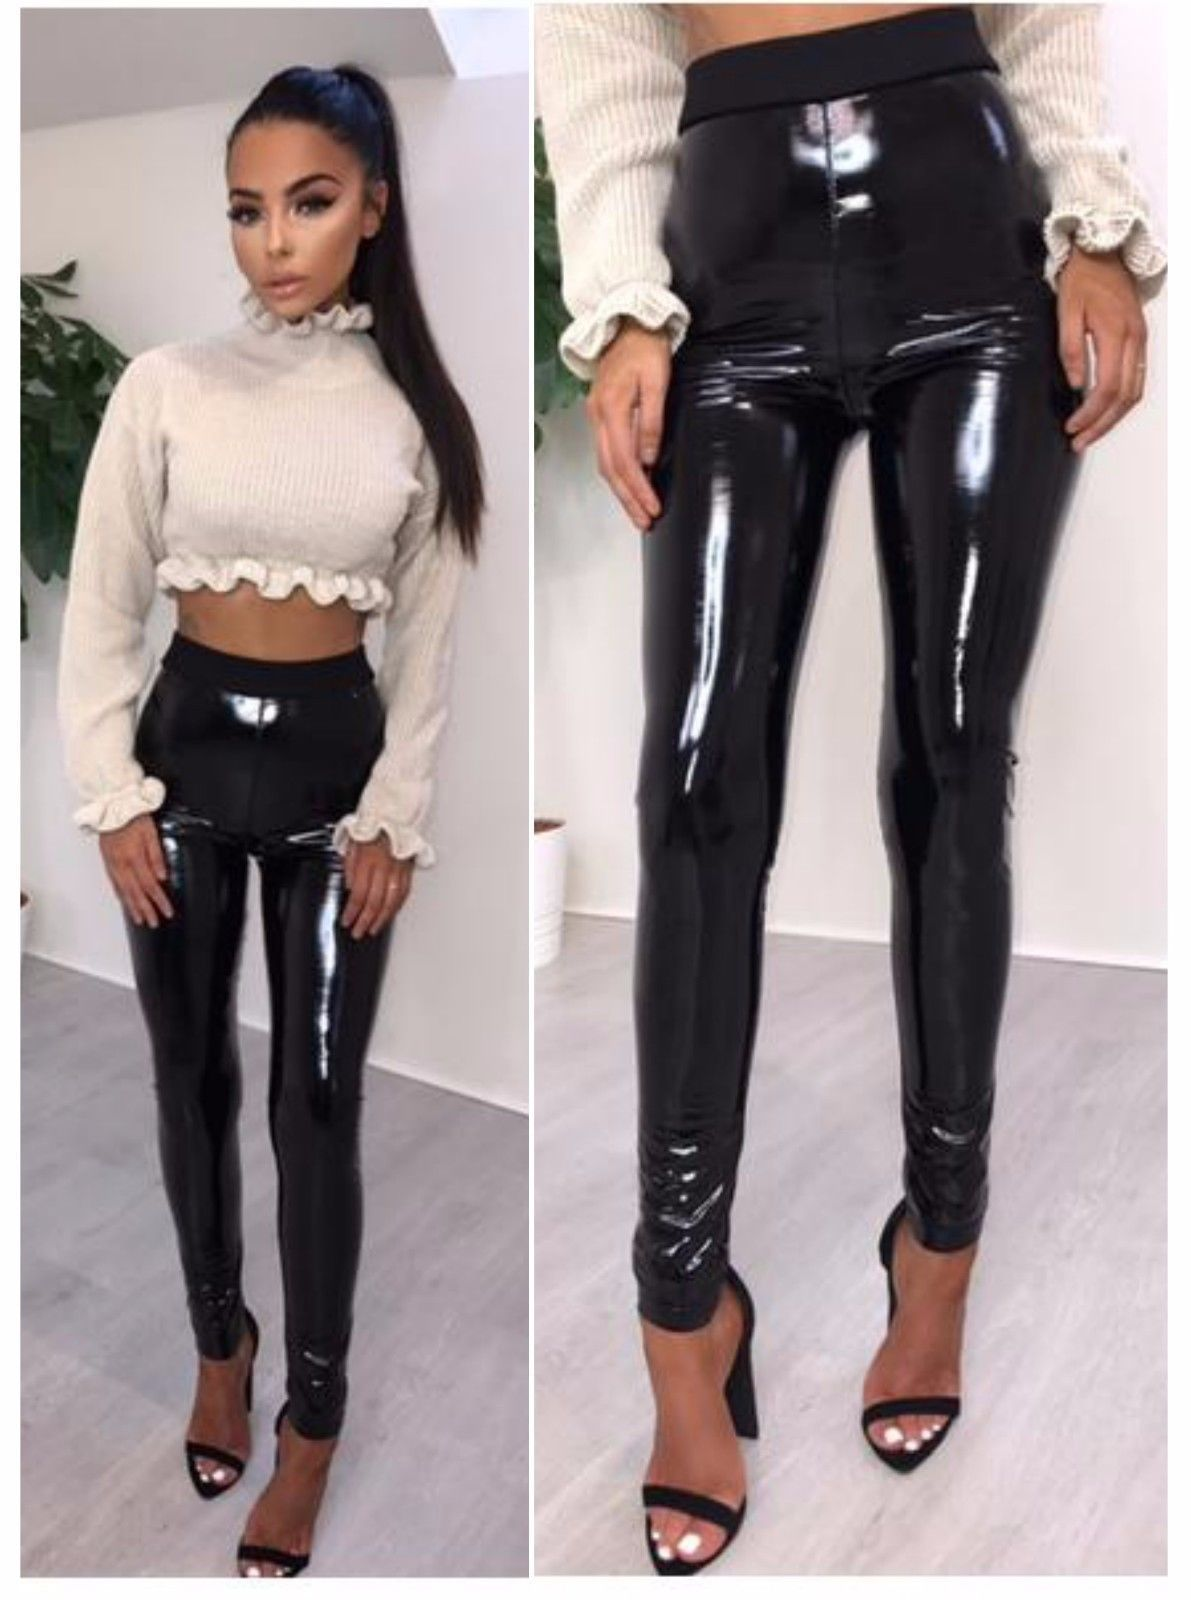 c8fada2e22a1 2018 new fashion Womens Ladies Soft Strethcy Shiny Wet Look PU  leatherrricdress